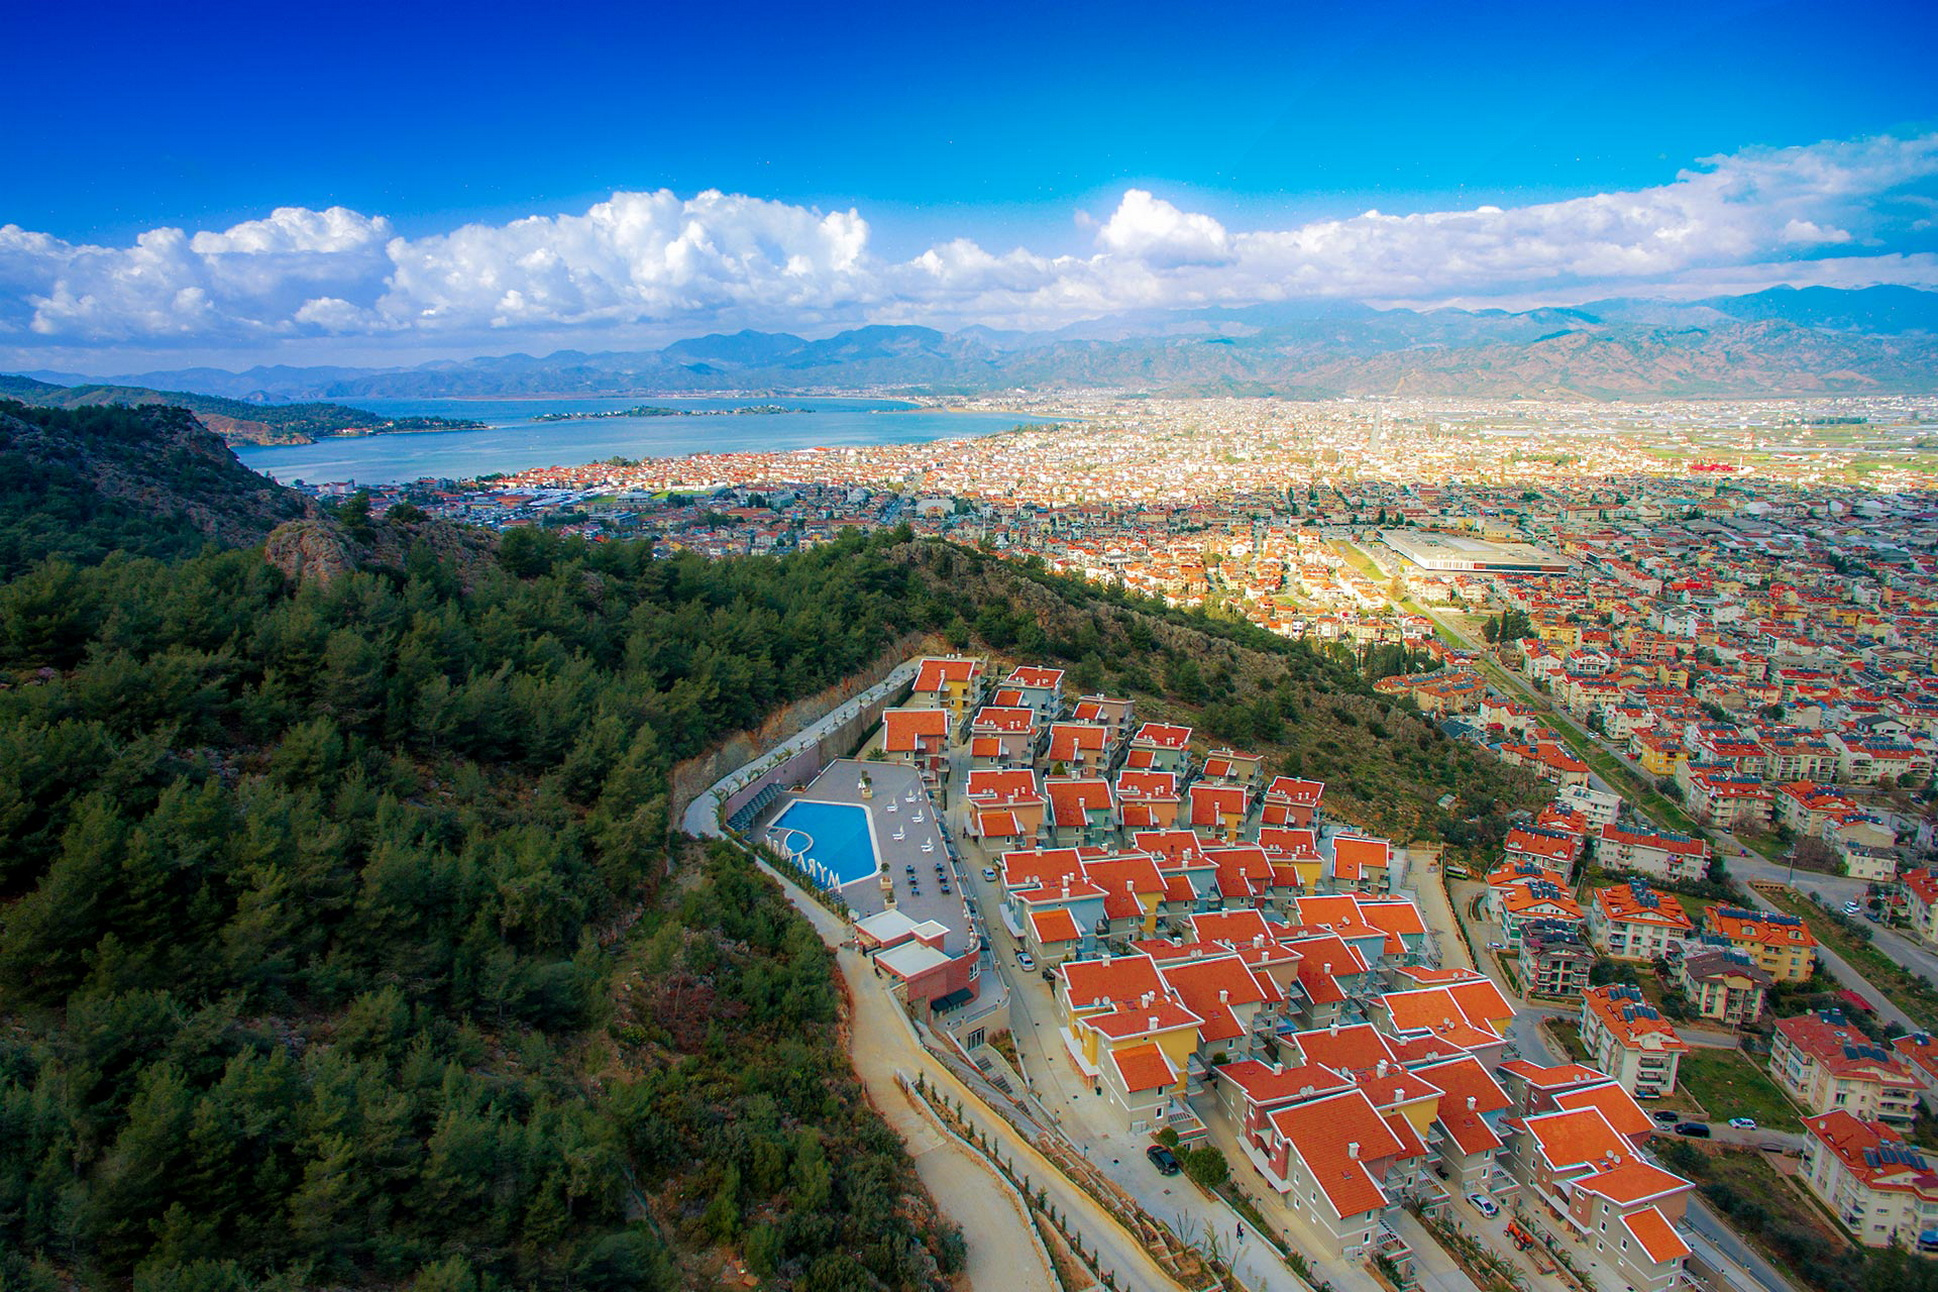 Brand New Estate/Complex Set Amongst the Pine Trees with Mountain Views in Deliktas Fethiye